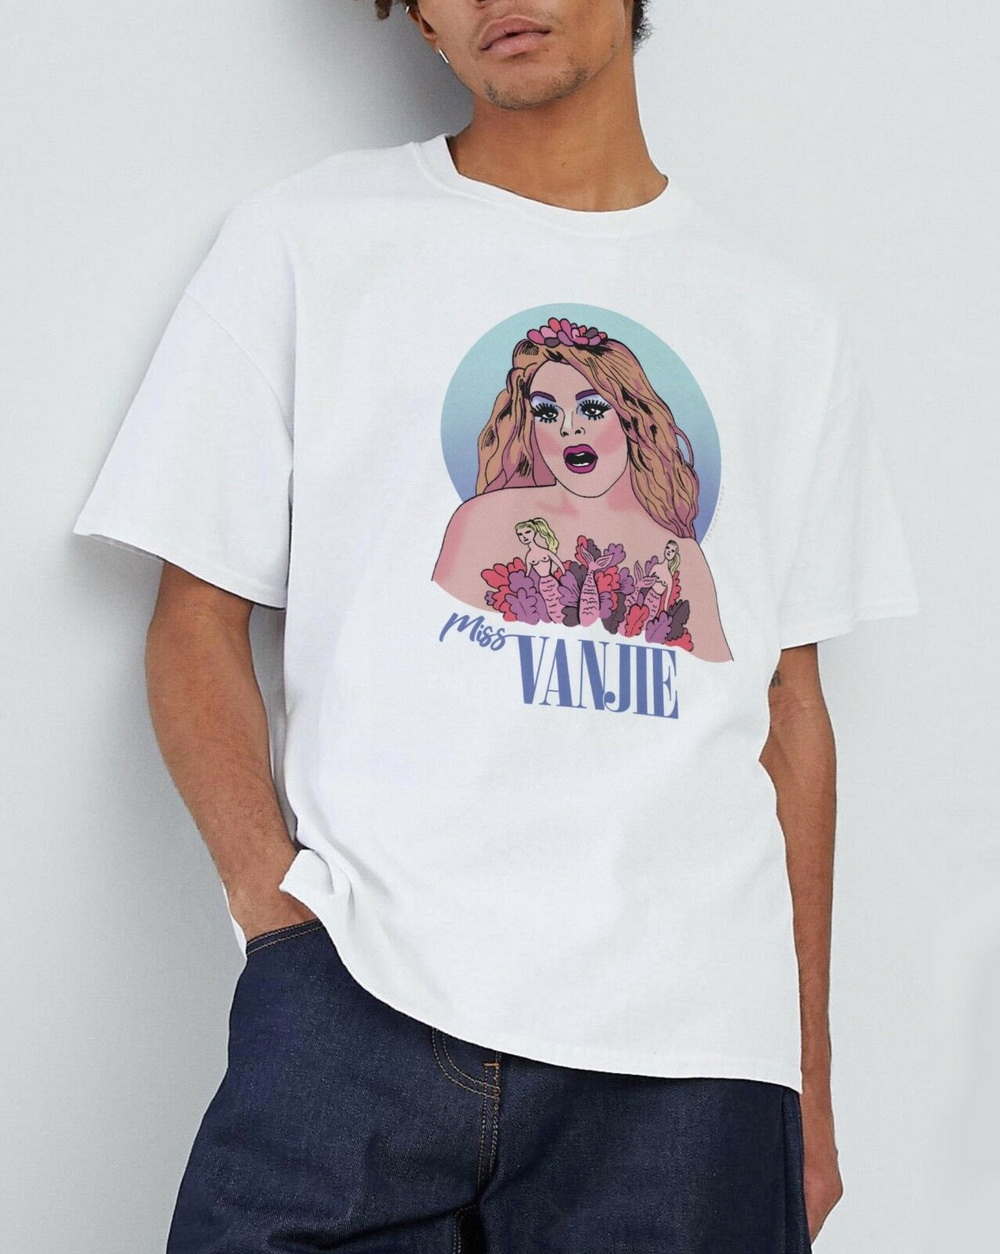 Details about  /Name Is Vanjie Unisex T-Shirt TopLGBTQ Off Duty Drag Queen Queer Slogan Fan